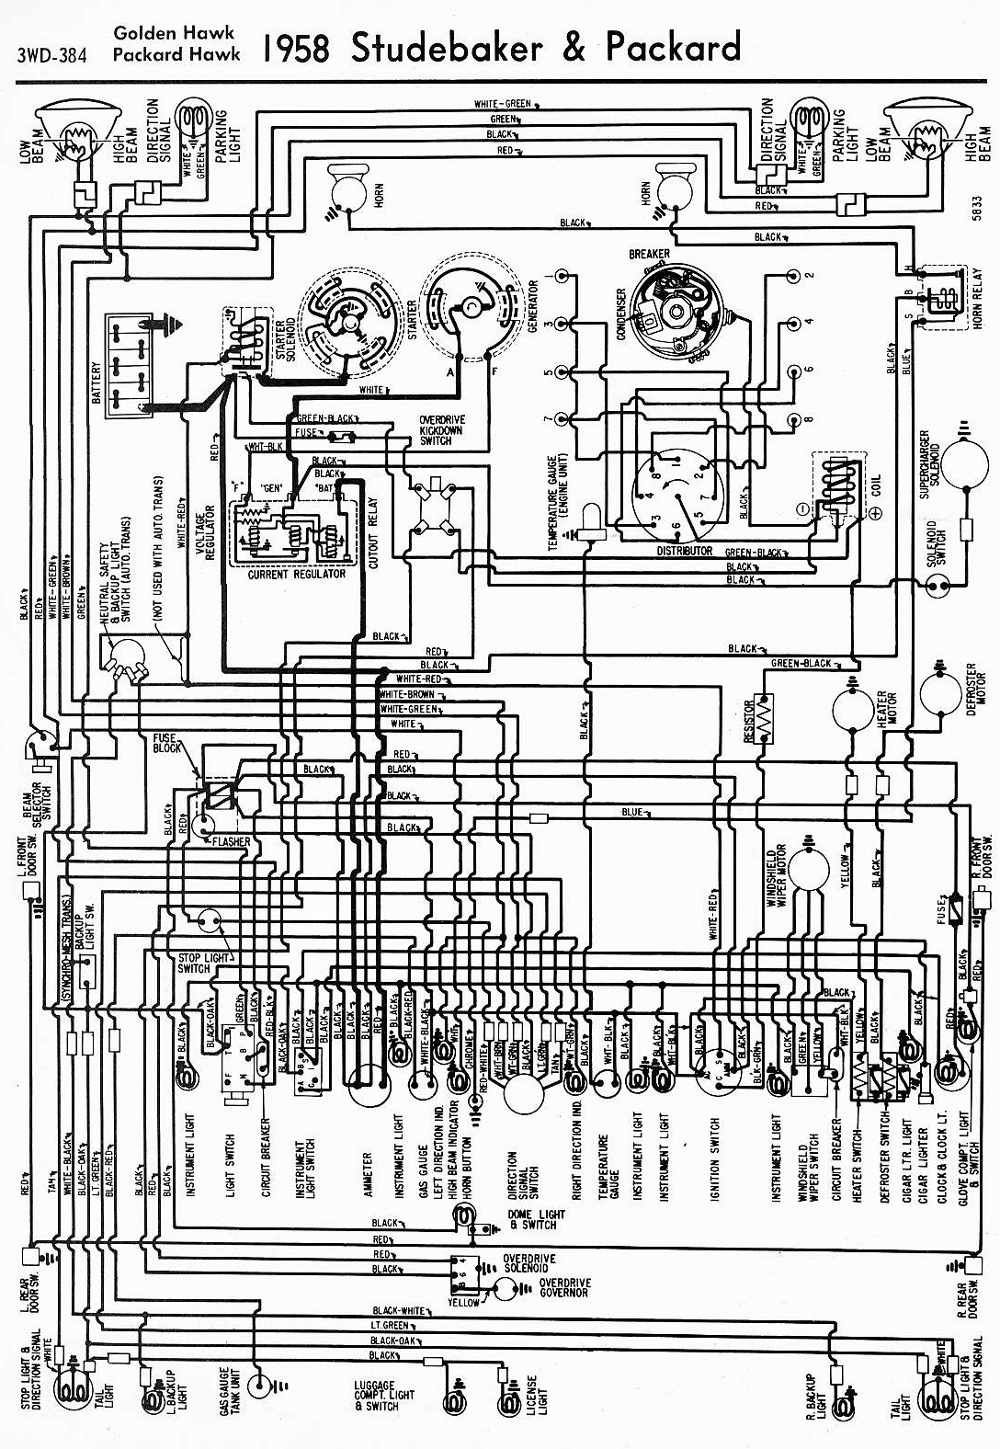 Wiring Diagrams Of 1958 Studebaker And Packard Golden Hawk